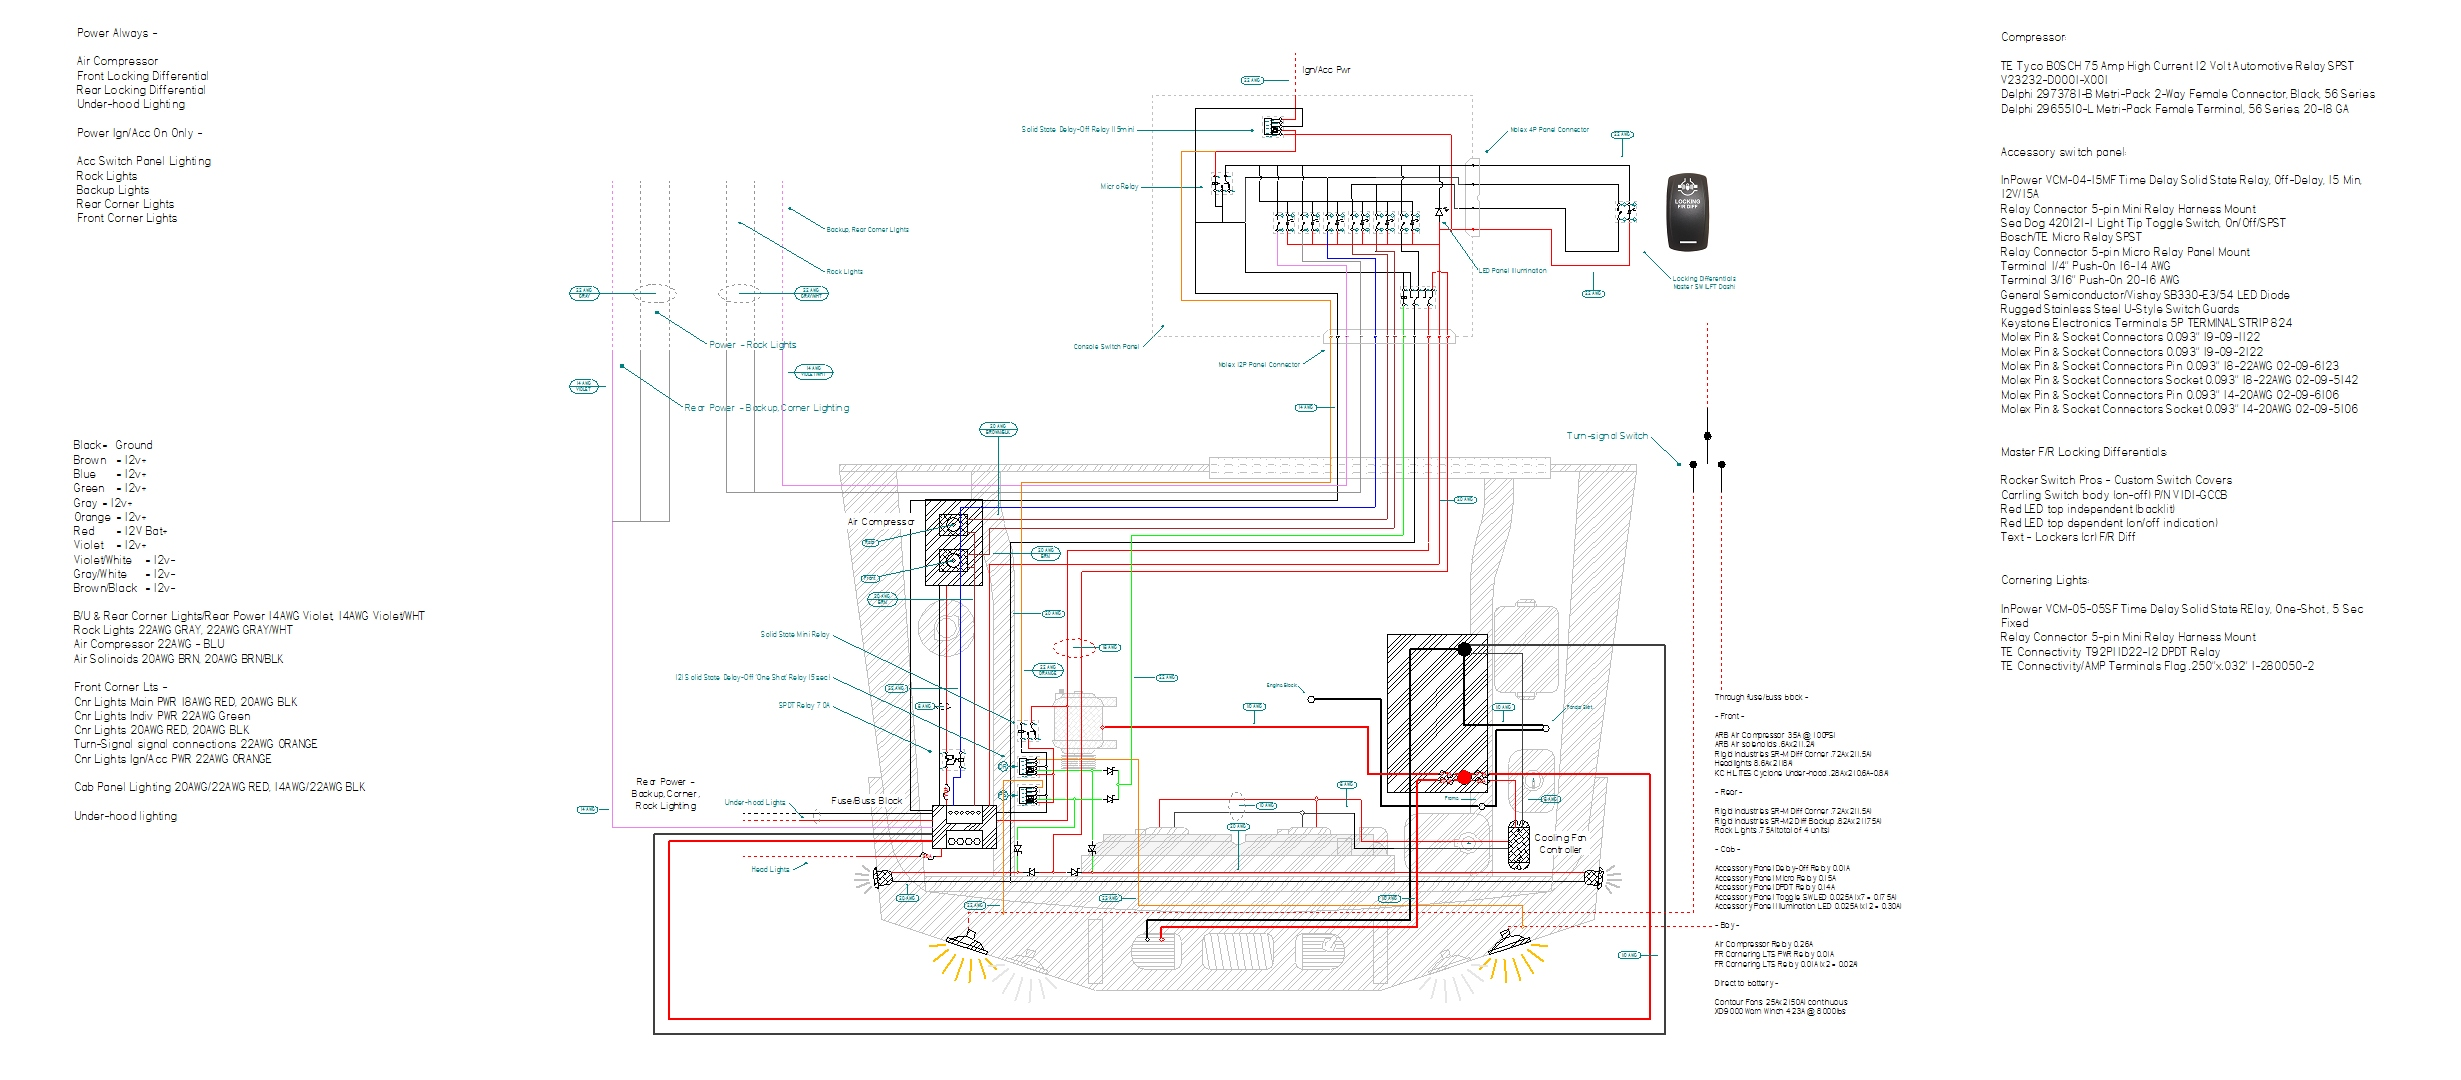 File Name: 1999 F 800 Wiring Diagram